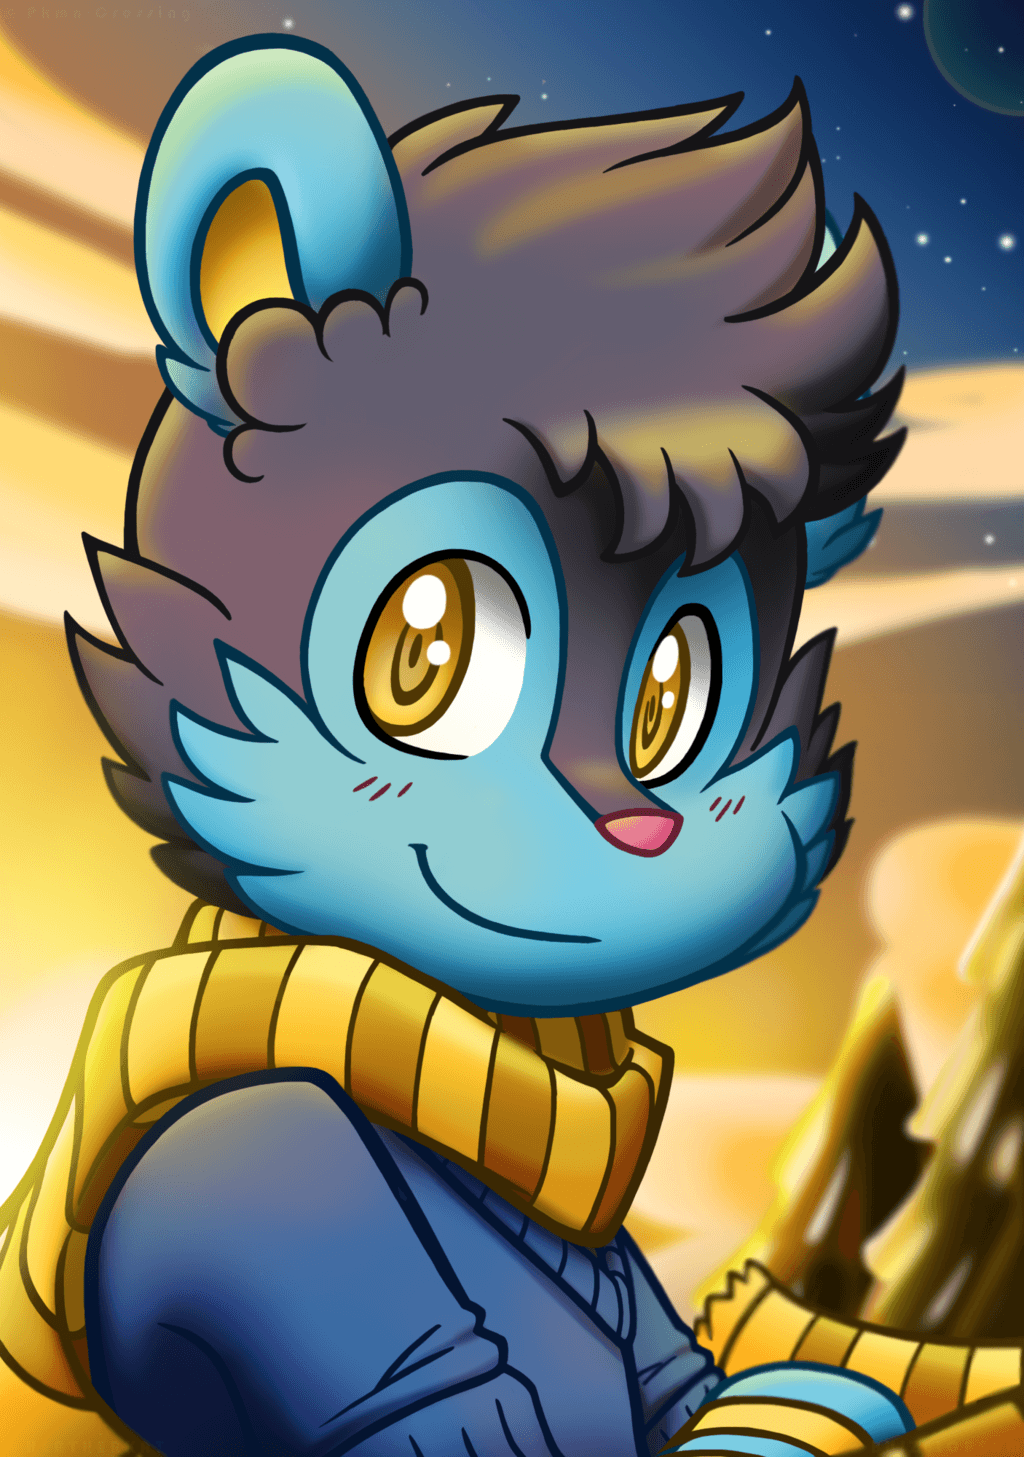 Bennet The Luxio by BuizelCream on DeviantArt